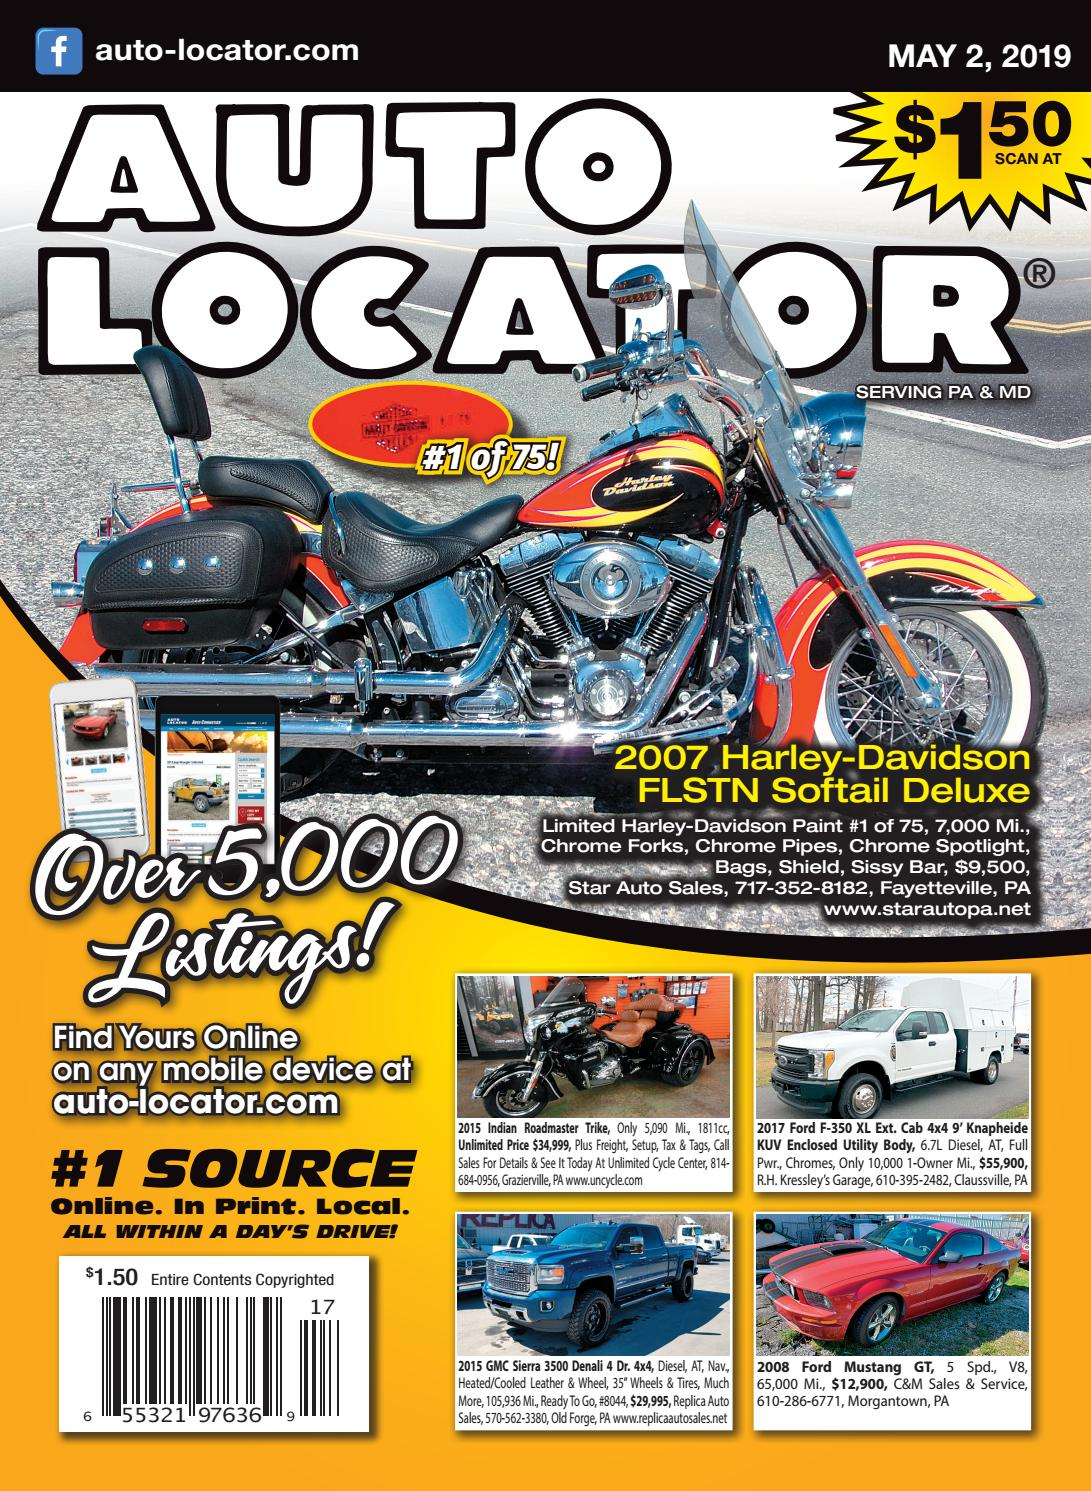 05-02-19 Auto Locator by Auto Locator and Auto Connection - issuu